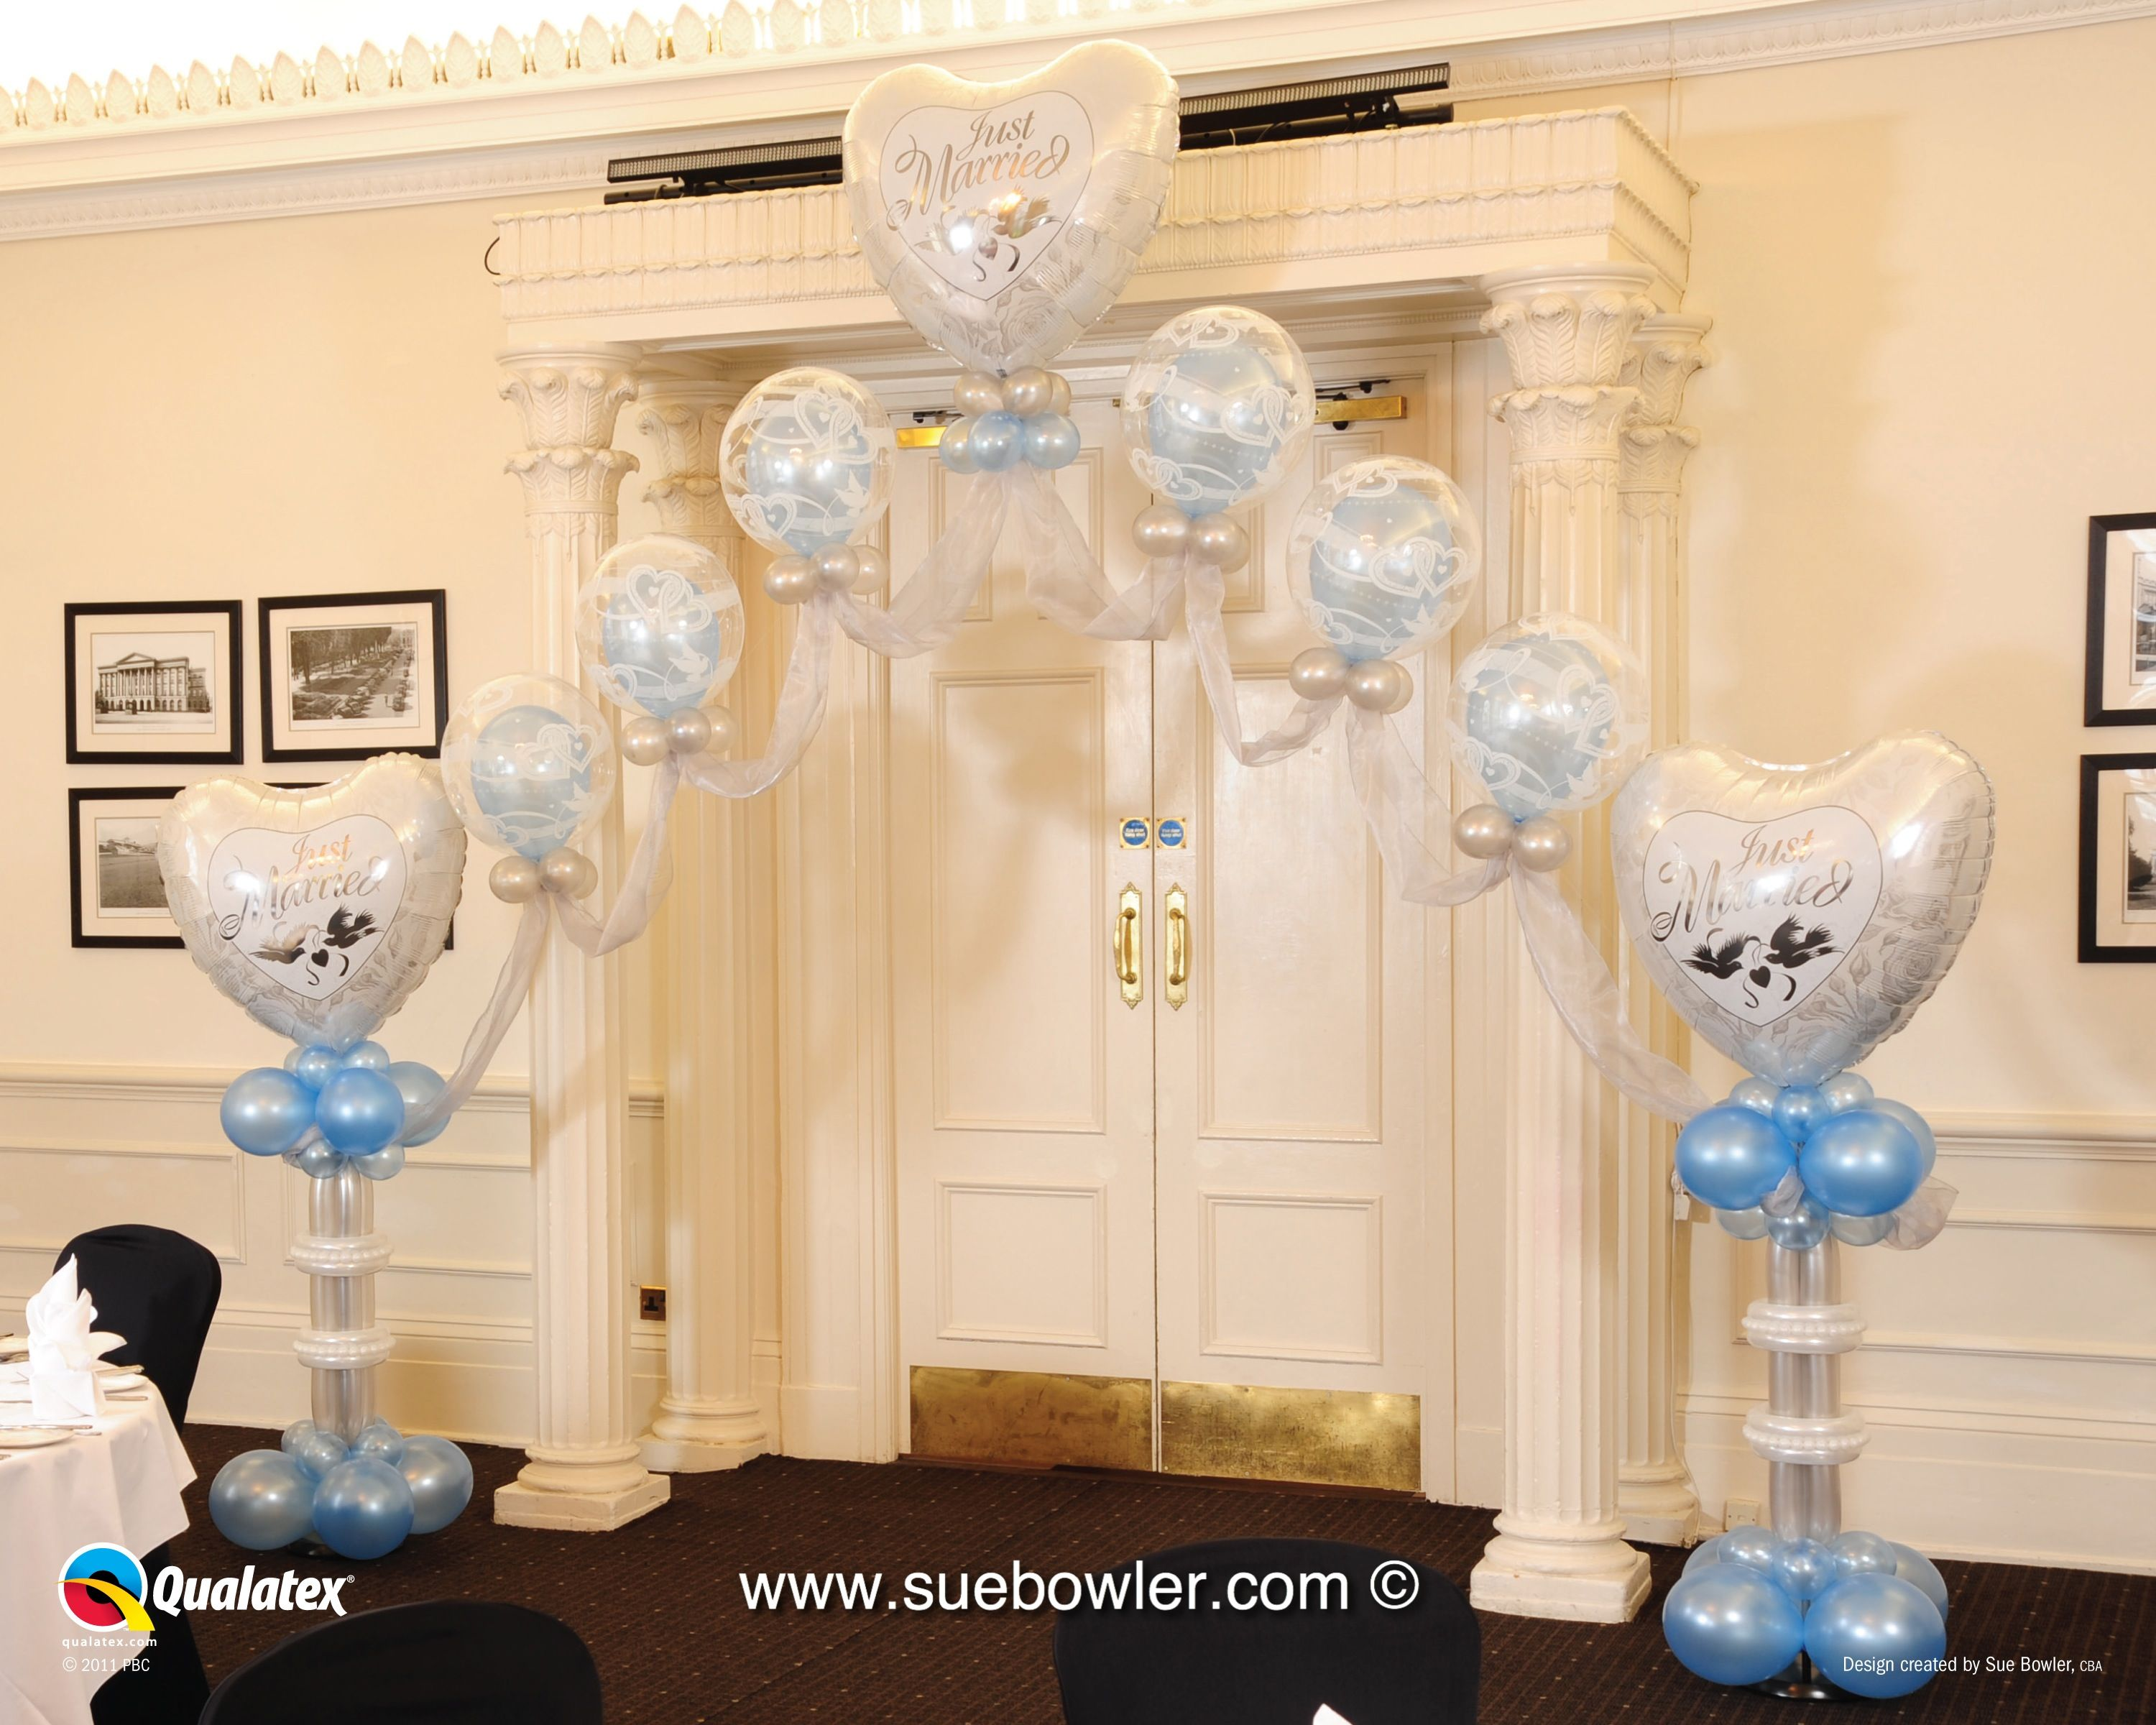 Wedding decorations quotes  Elegant Entrance Decor  Sue Bowler CBA Wedding Series   Balloons